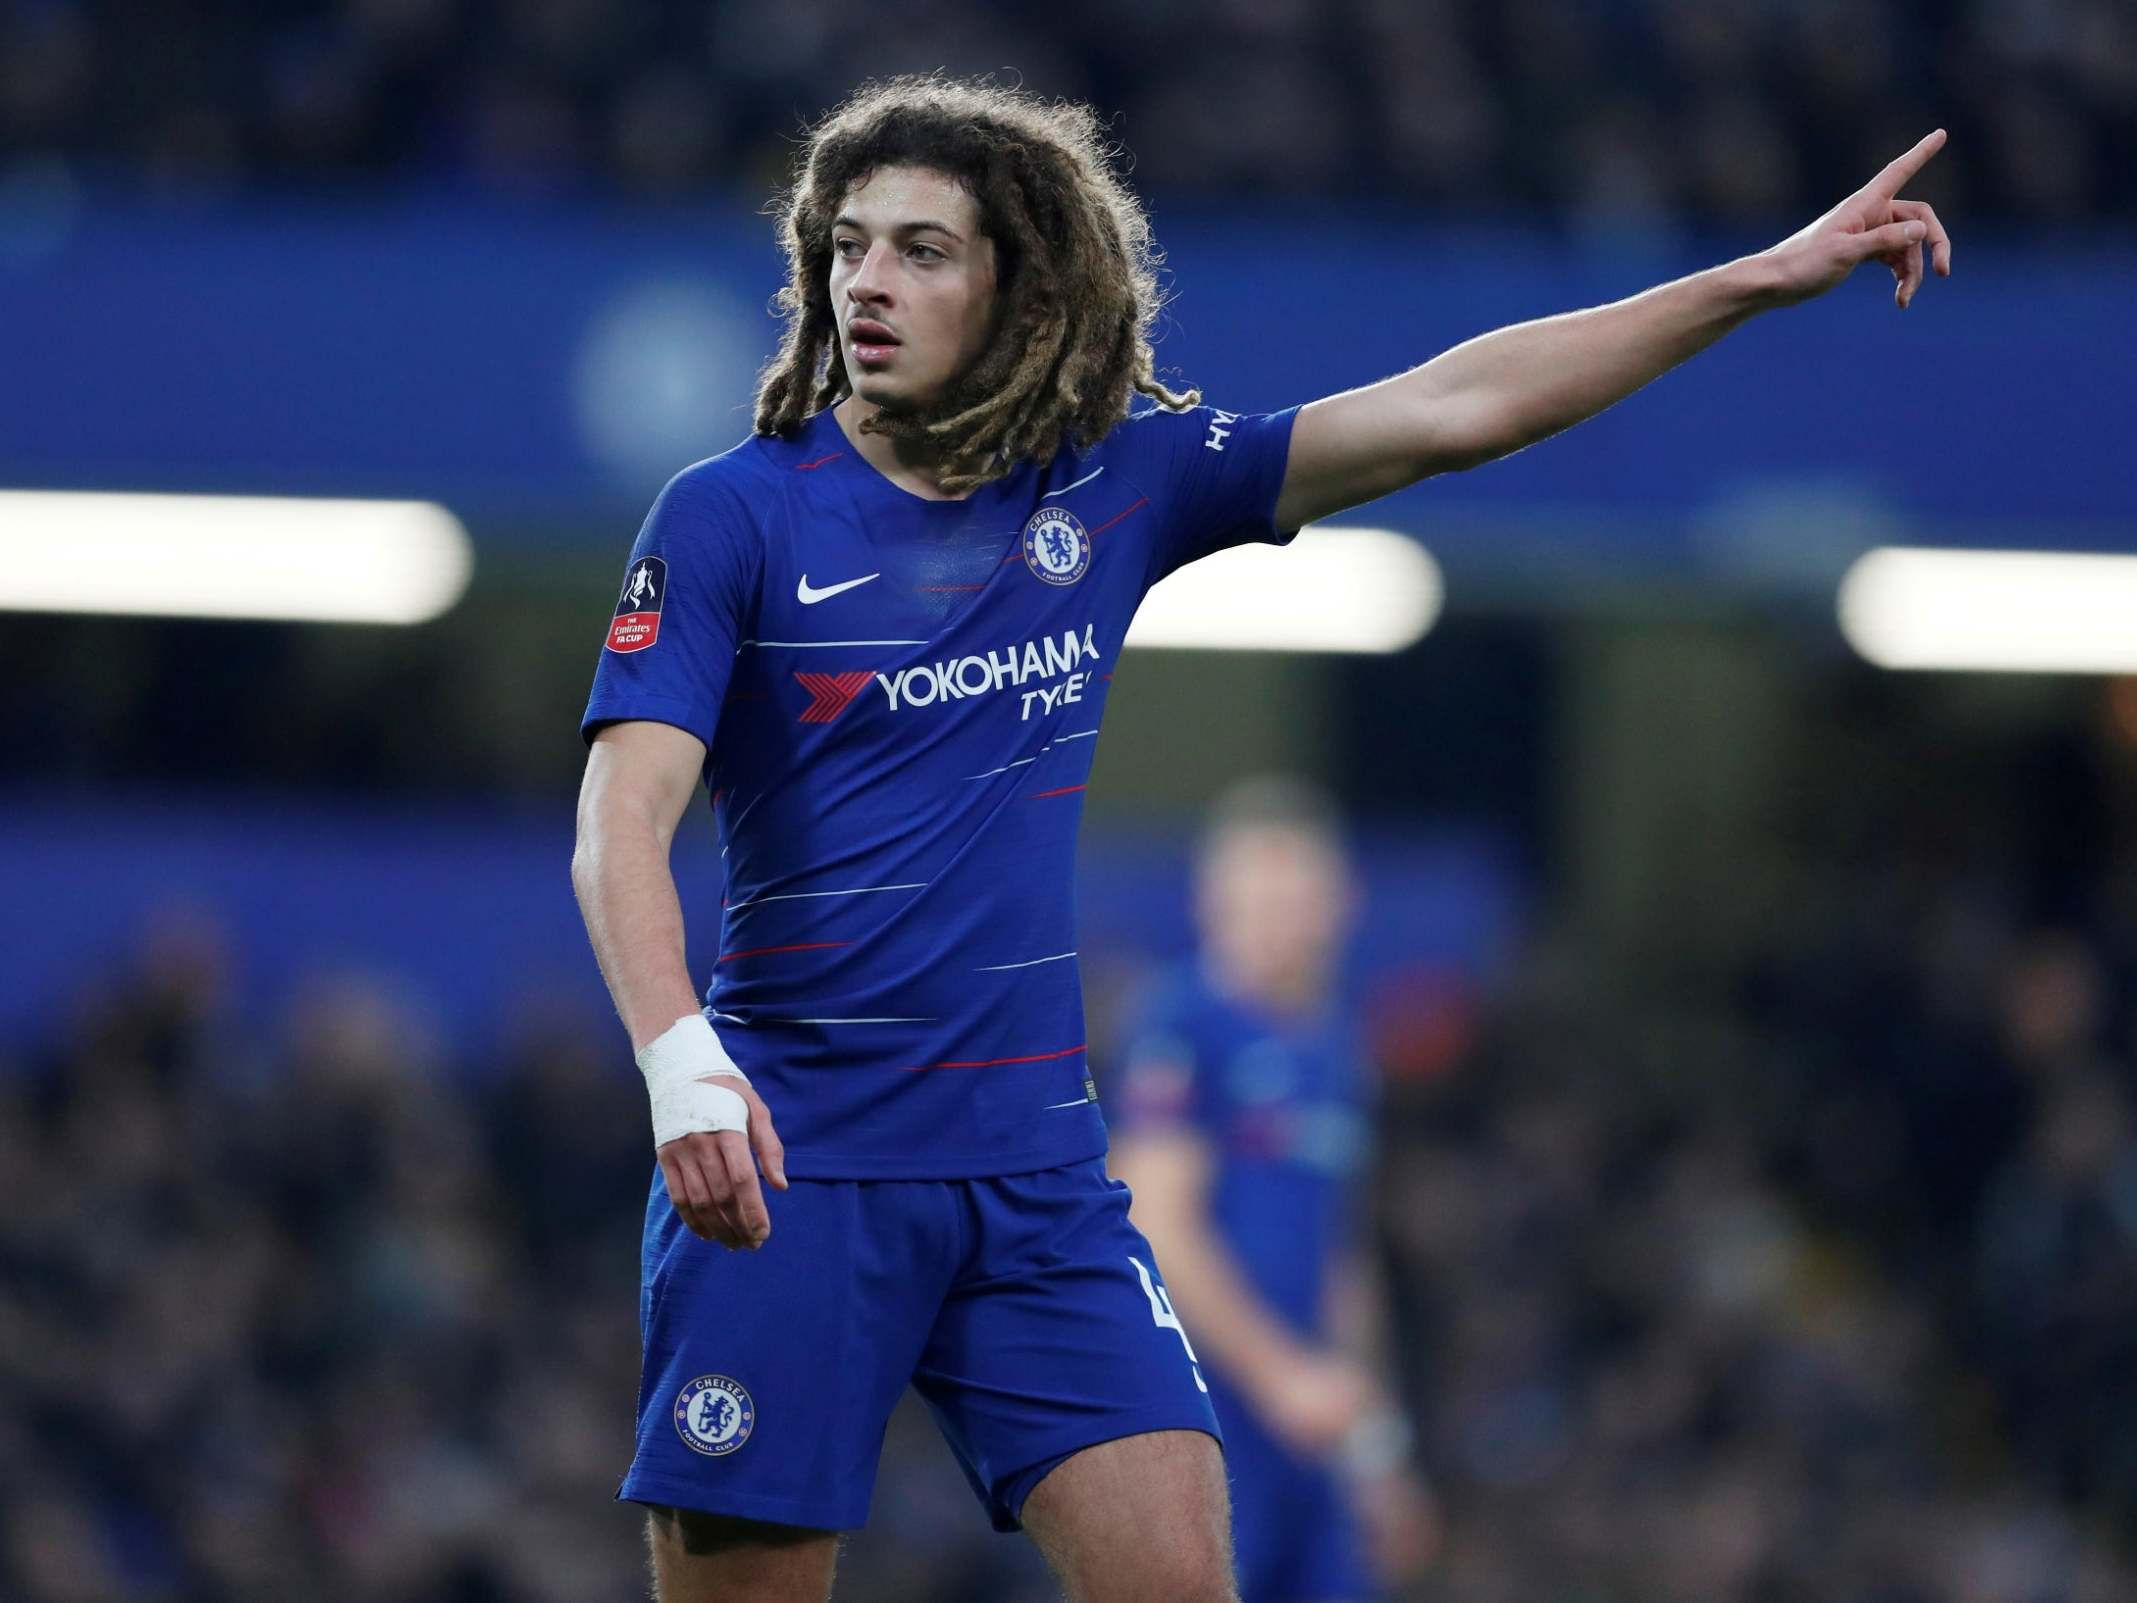 Chelsea transfer news: Ethan Ampadu relishing 'perfect step' after sealing RB Leipzig move